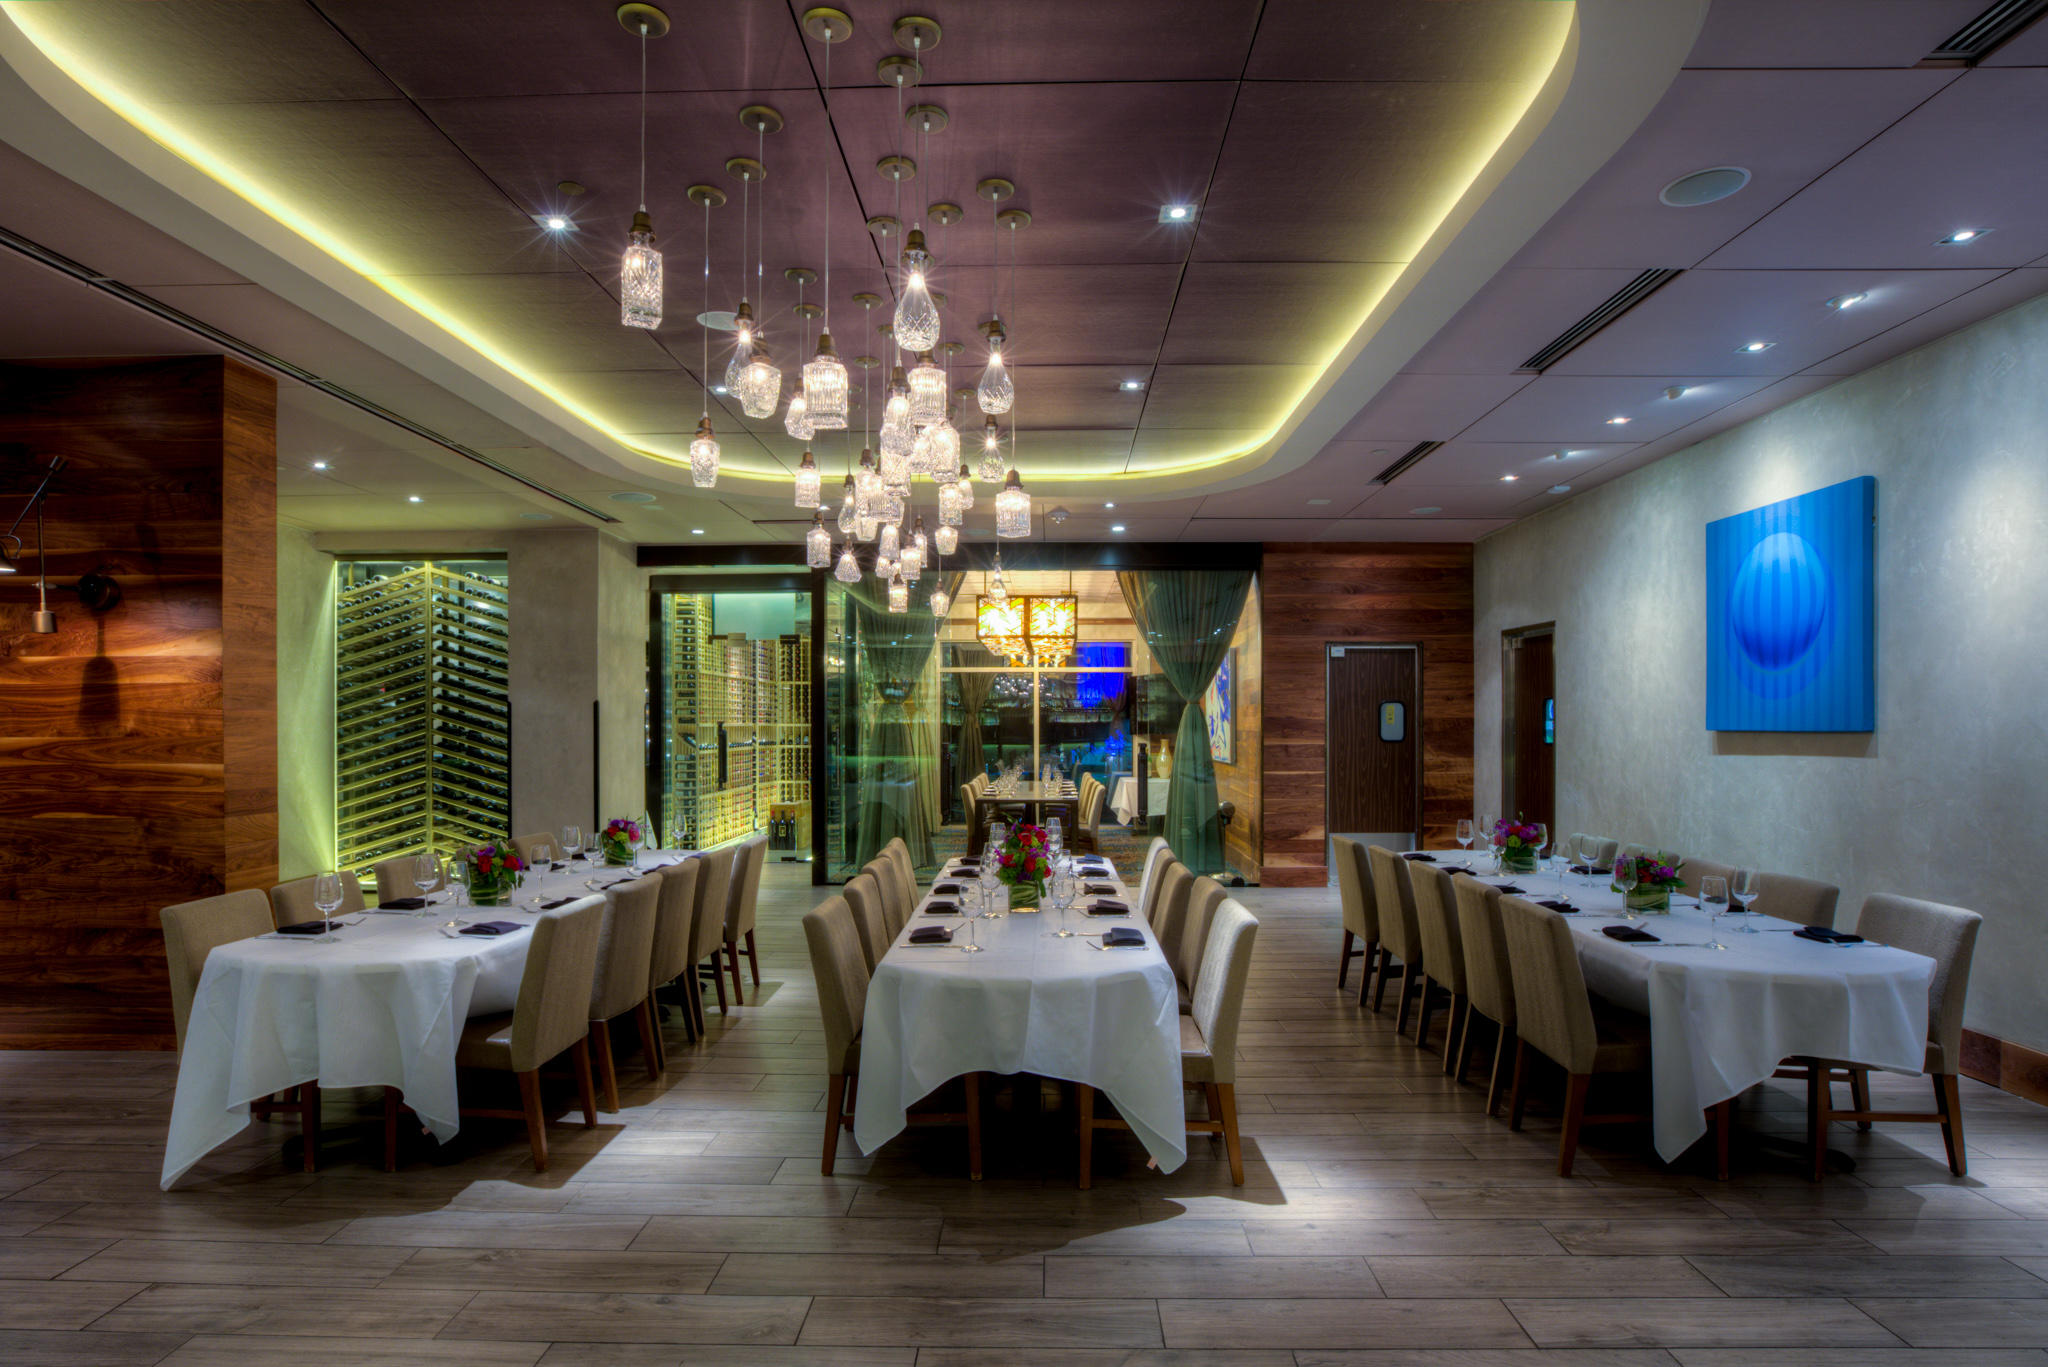 Del Frisco's Double Eagle Steak House Orlando VERANDA ROOM private dining room